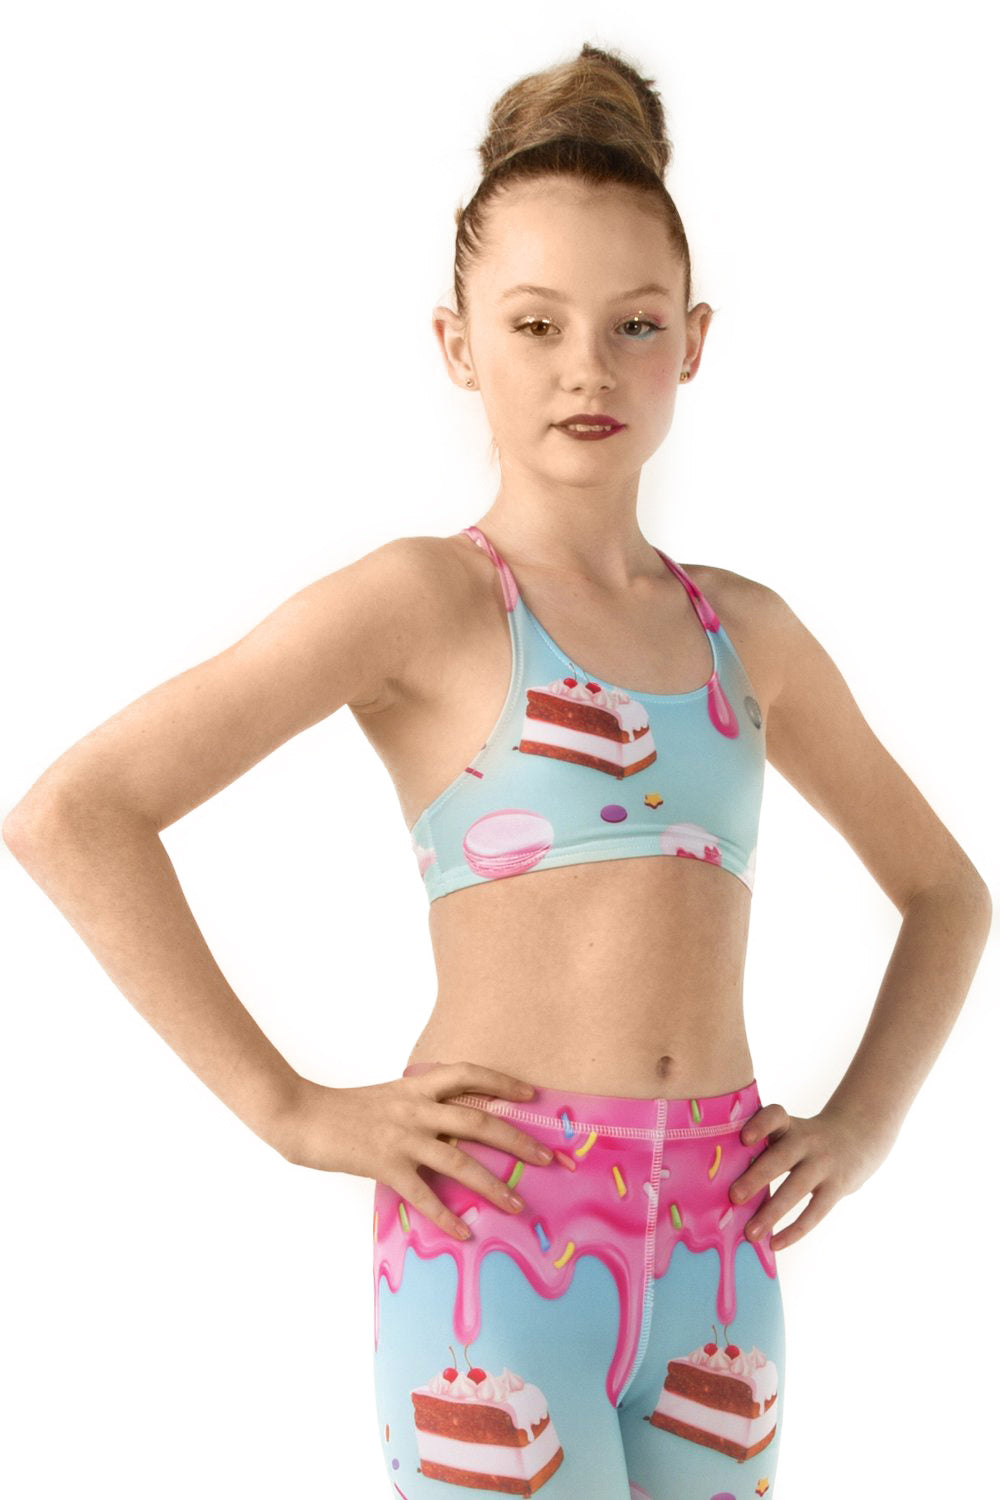 Candyland Bra Top - Youth